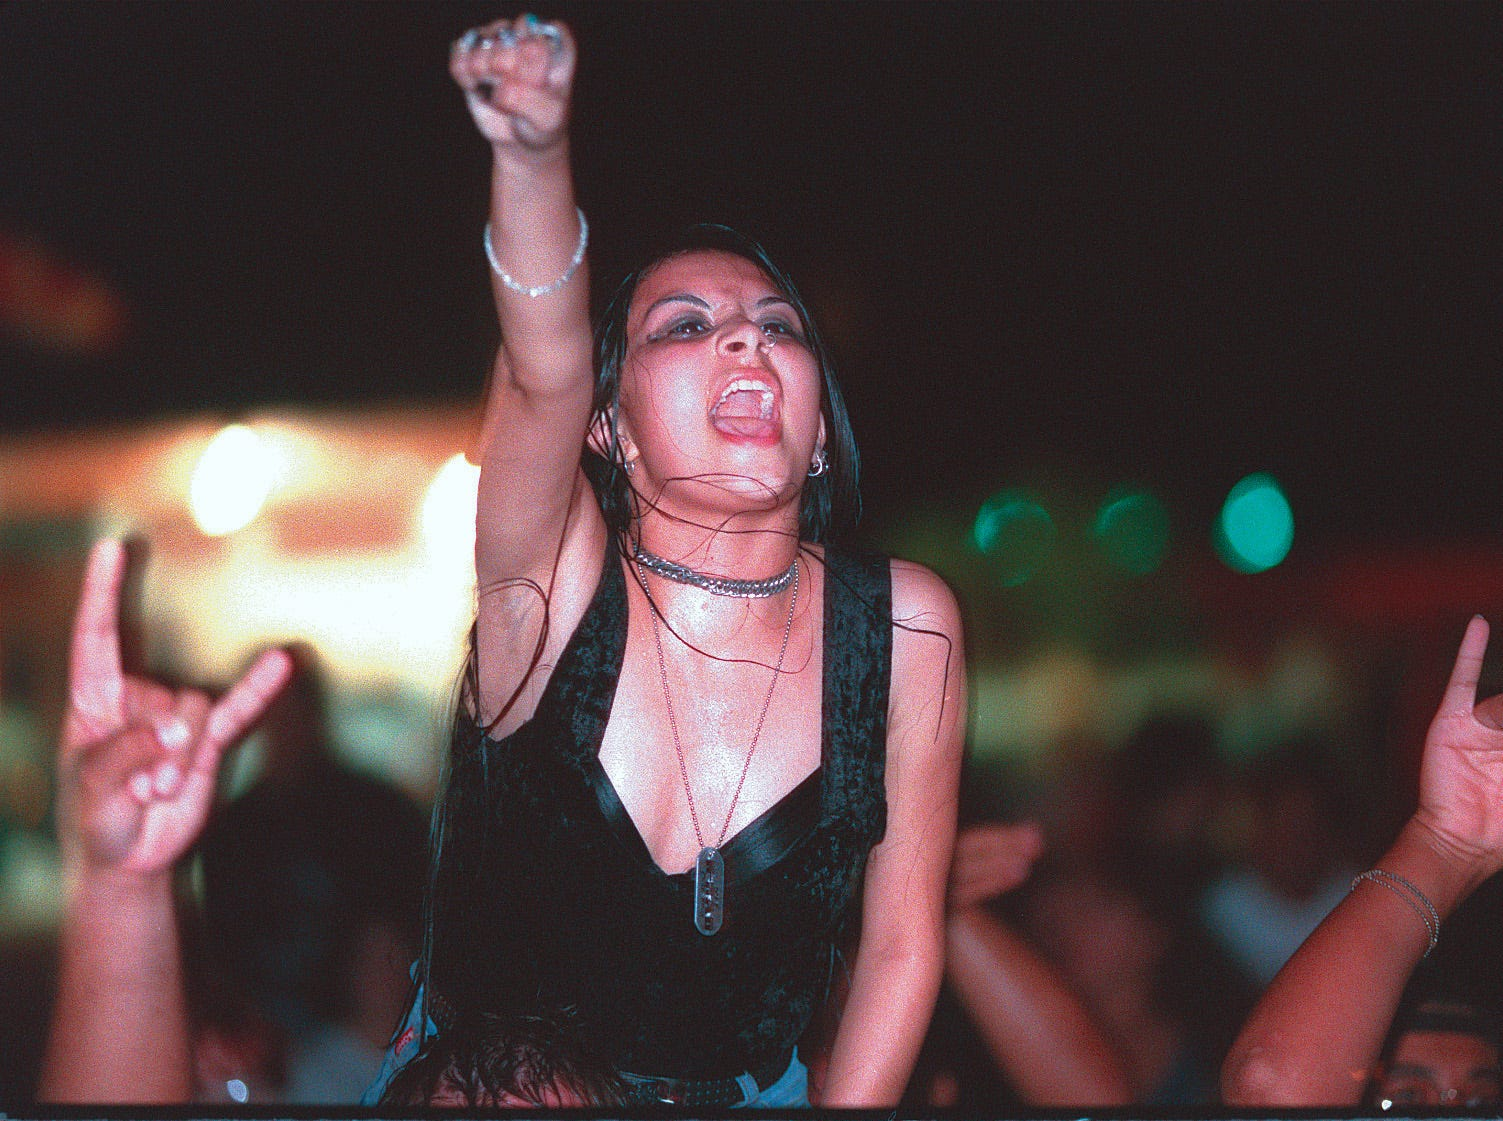 An excited fan cheers on Anthrax June 12, 1996 at Texas Sky Festival Park in Corpus Christi.